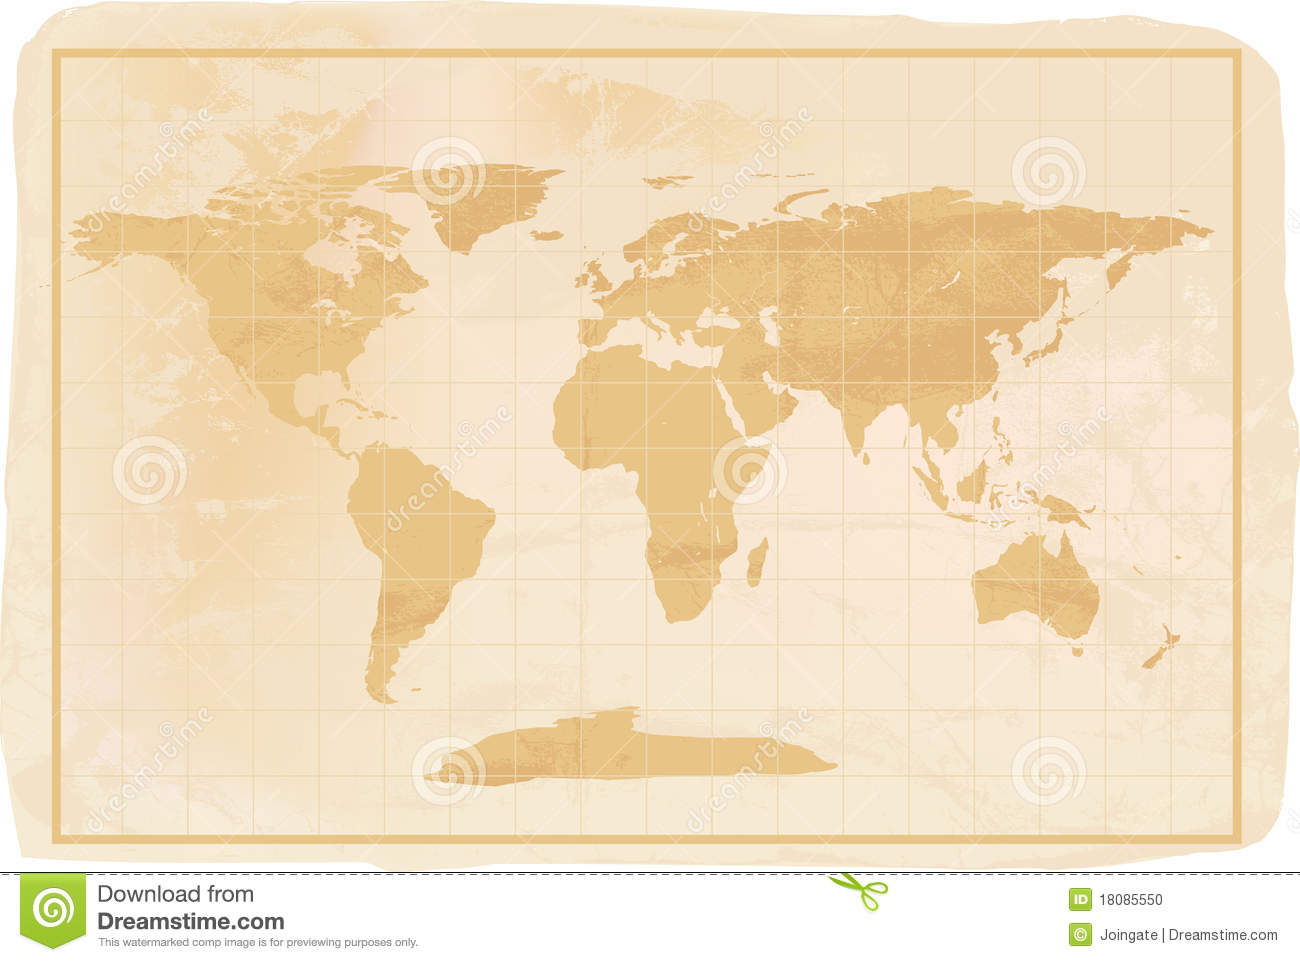 Old style world map stock illustrations 3399 old style world old style anitioque world map illustration of a yellow old vintage world map with crreases gumiabroncs Gallery